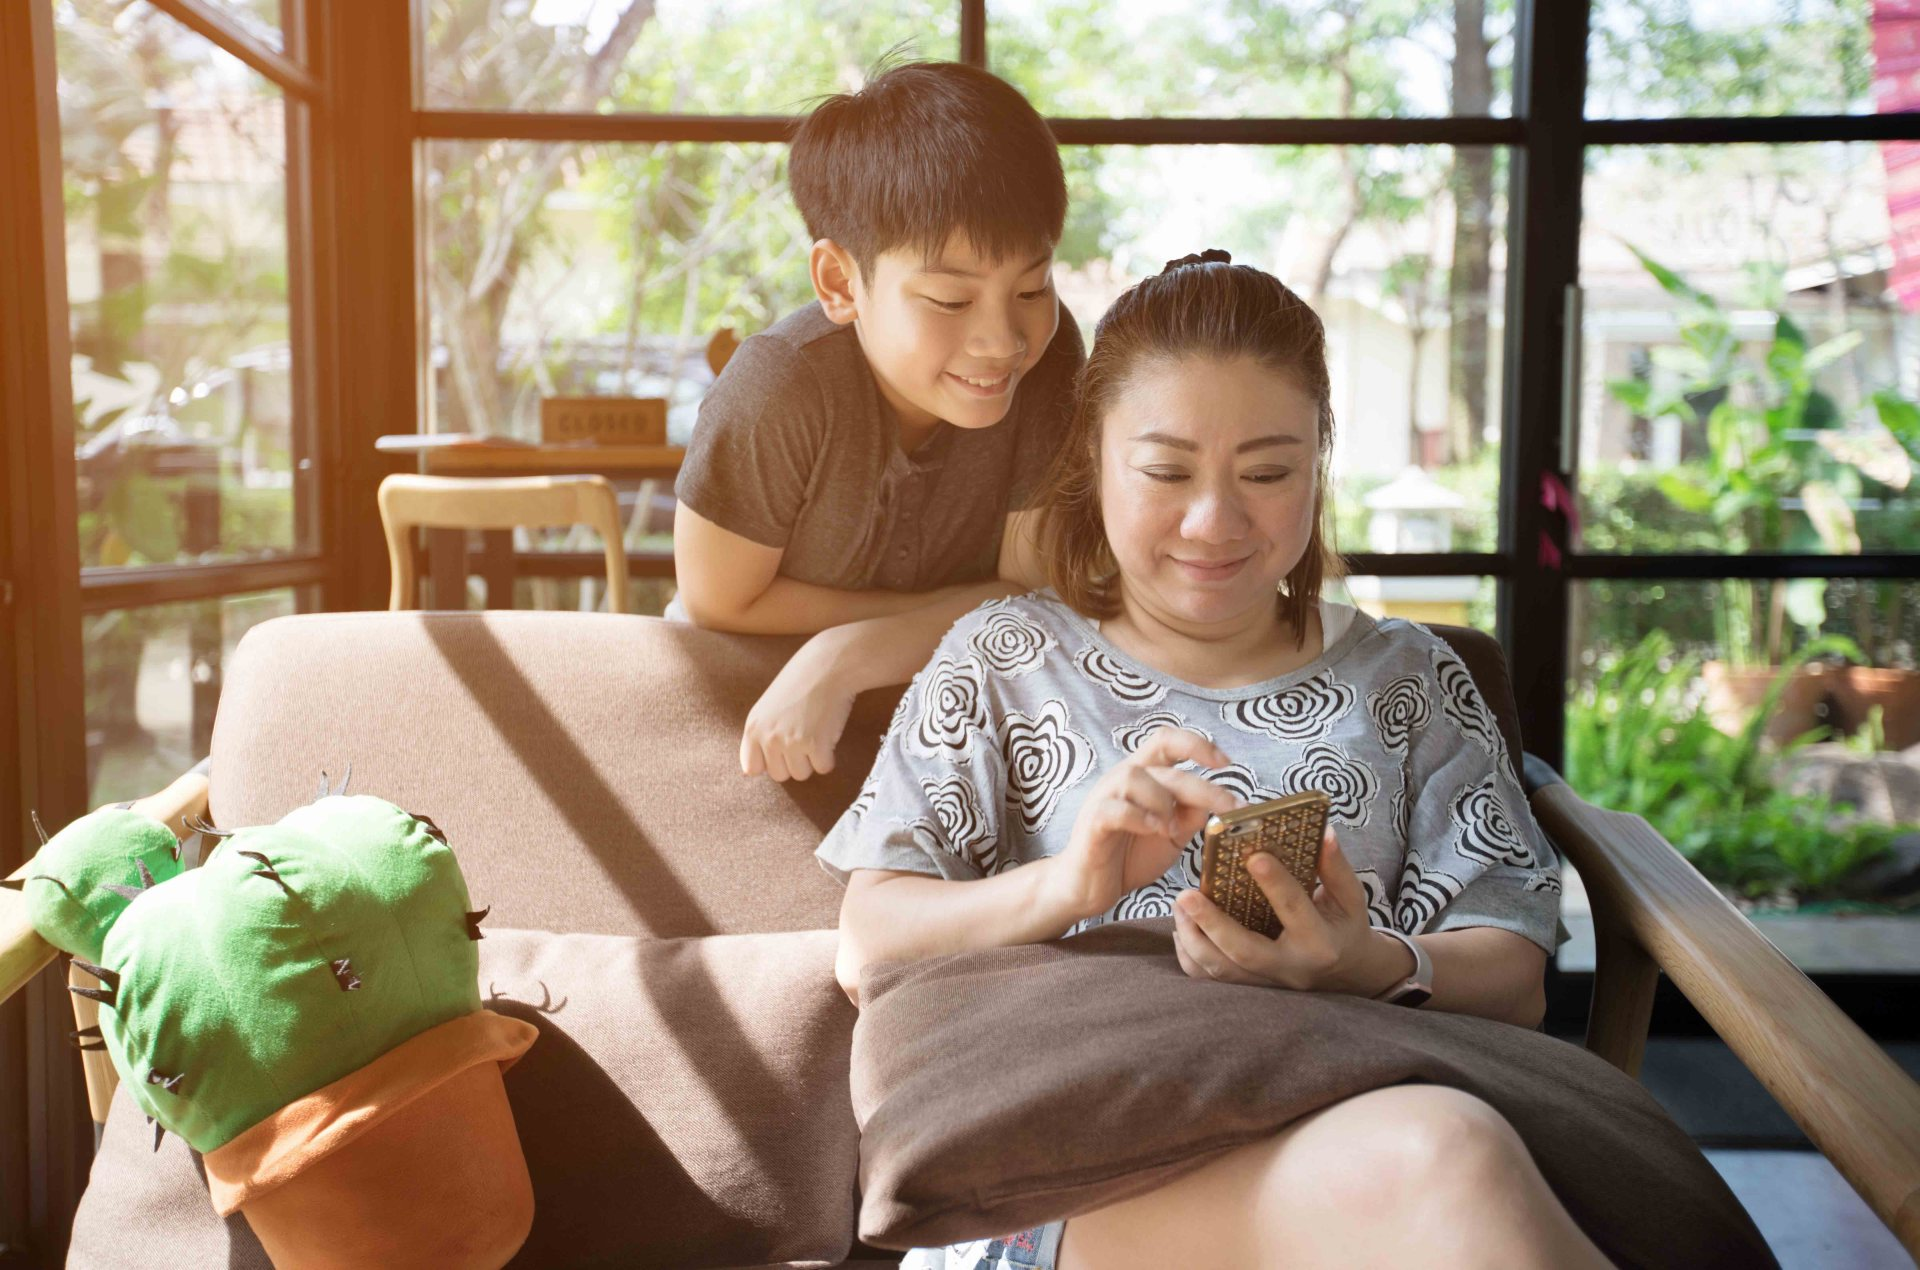 Mom and her son setting up an account on the Mydoh money management app for kids